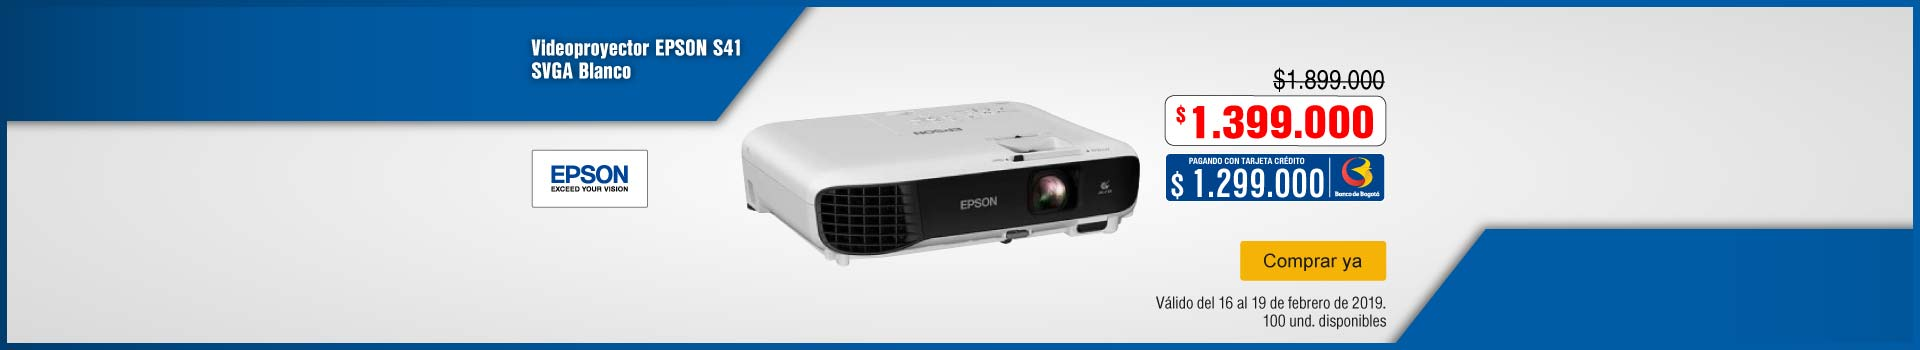 AK-KT-BCAT-1-computadores y tablets-videoproyectores-PP---Videoproyector Epson S41 SVGA_feb15GC